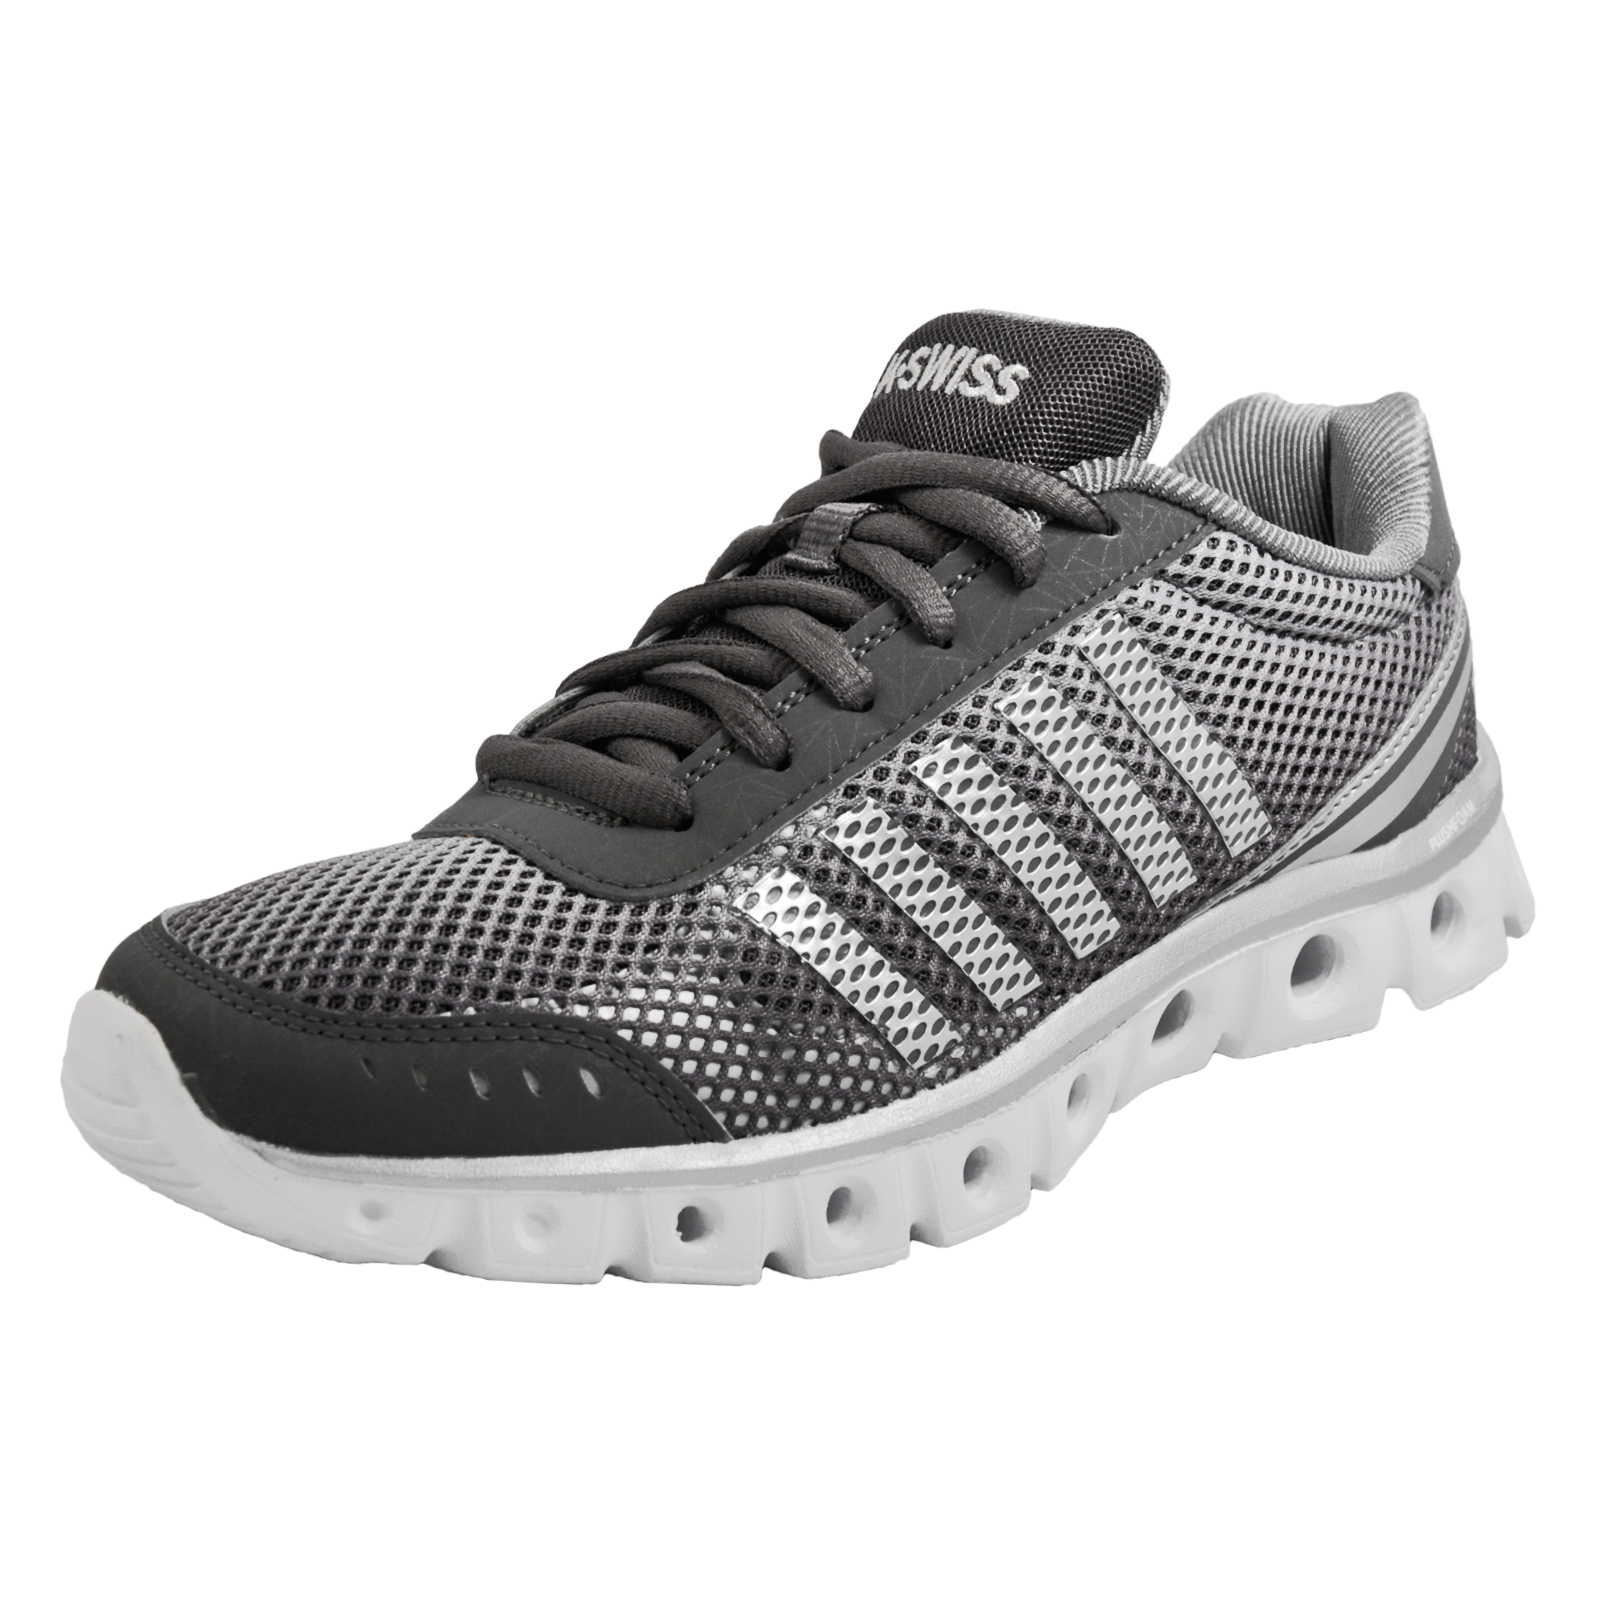 384052c8ac37 Details about K Swiss X Lite Athletic Cmf Men s Memory Foam Running Shoes  Fitness Trainers Gre